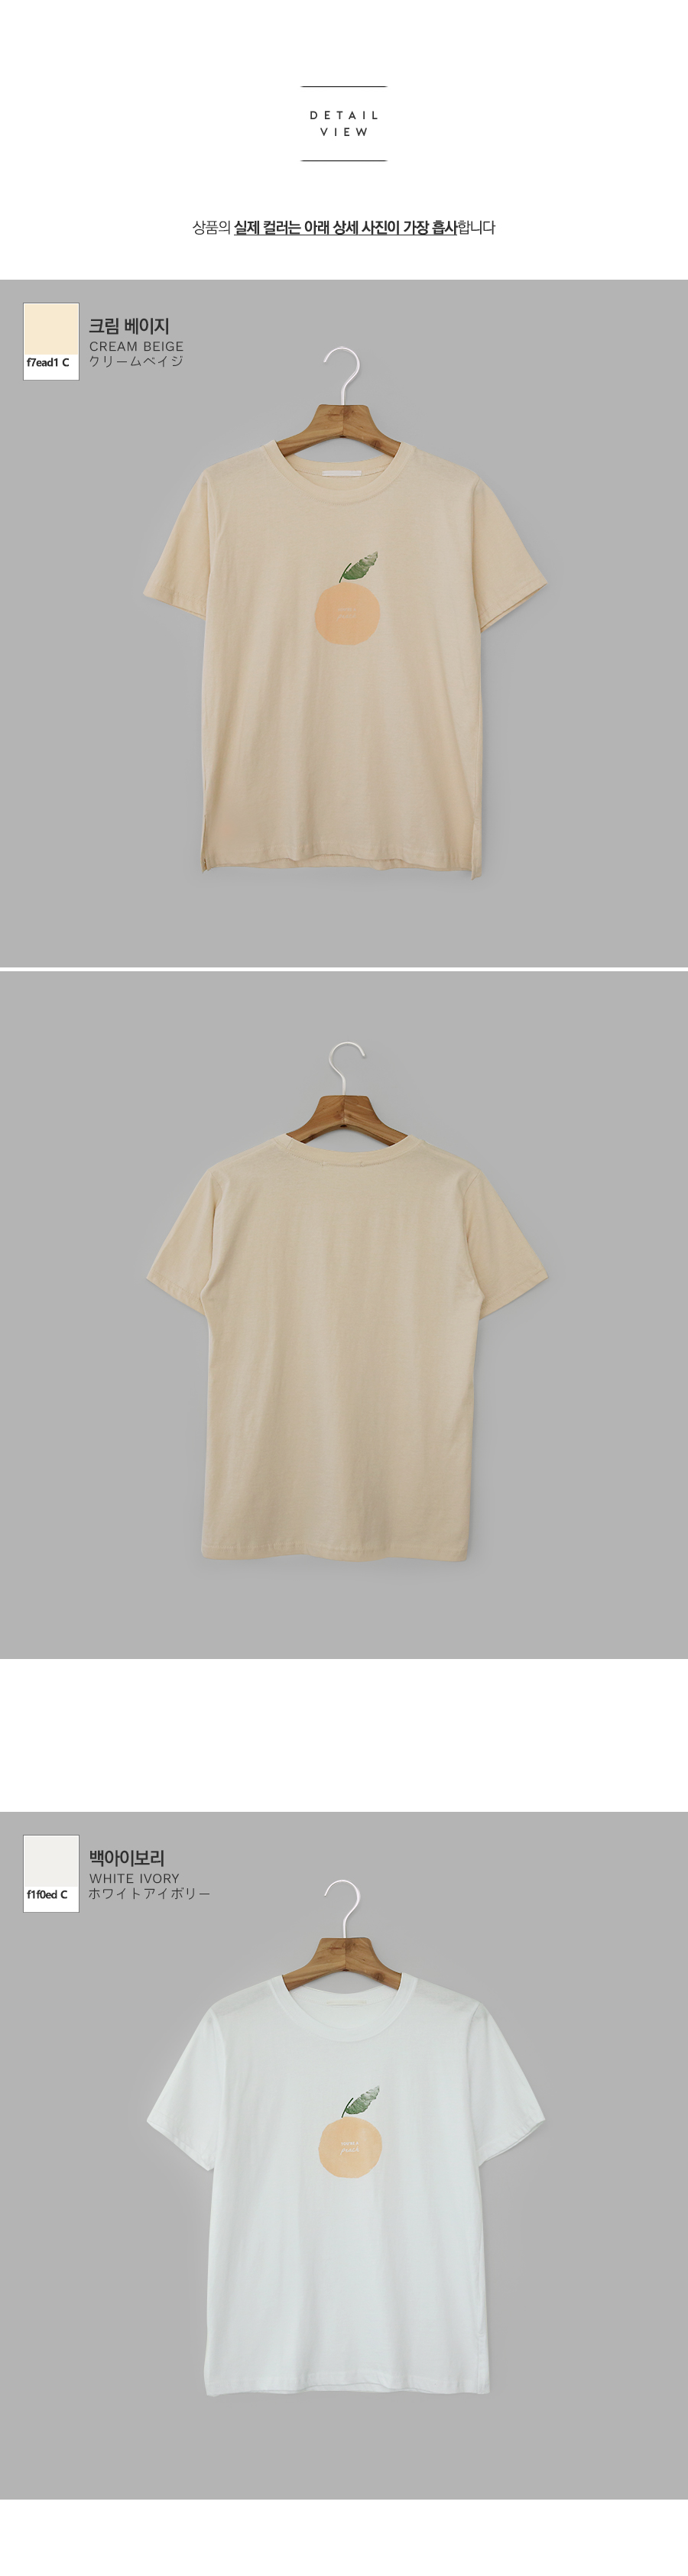 Creamy Pitch Printing Short Sleeve Tee